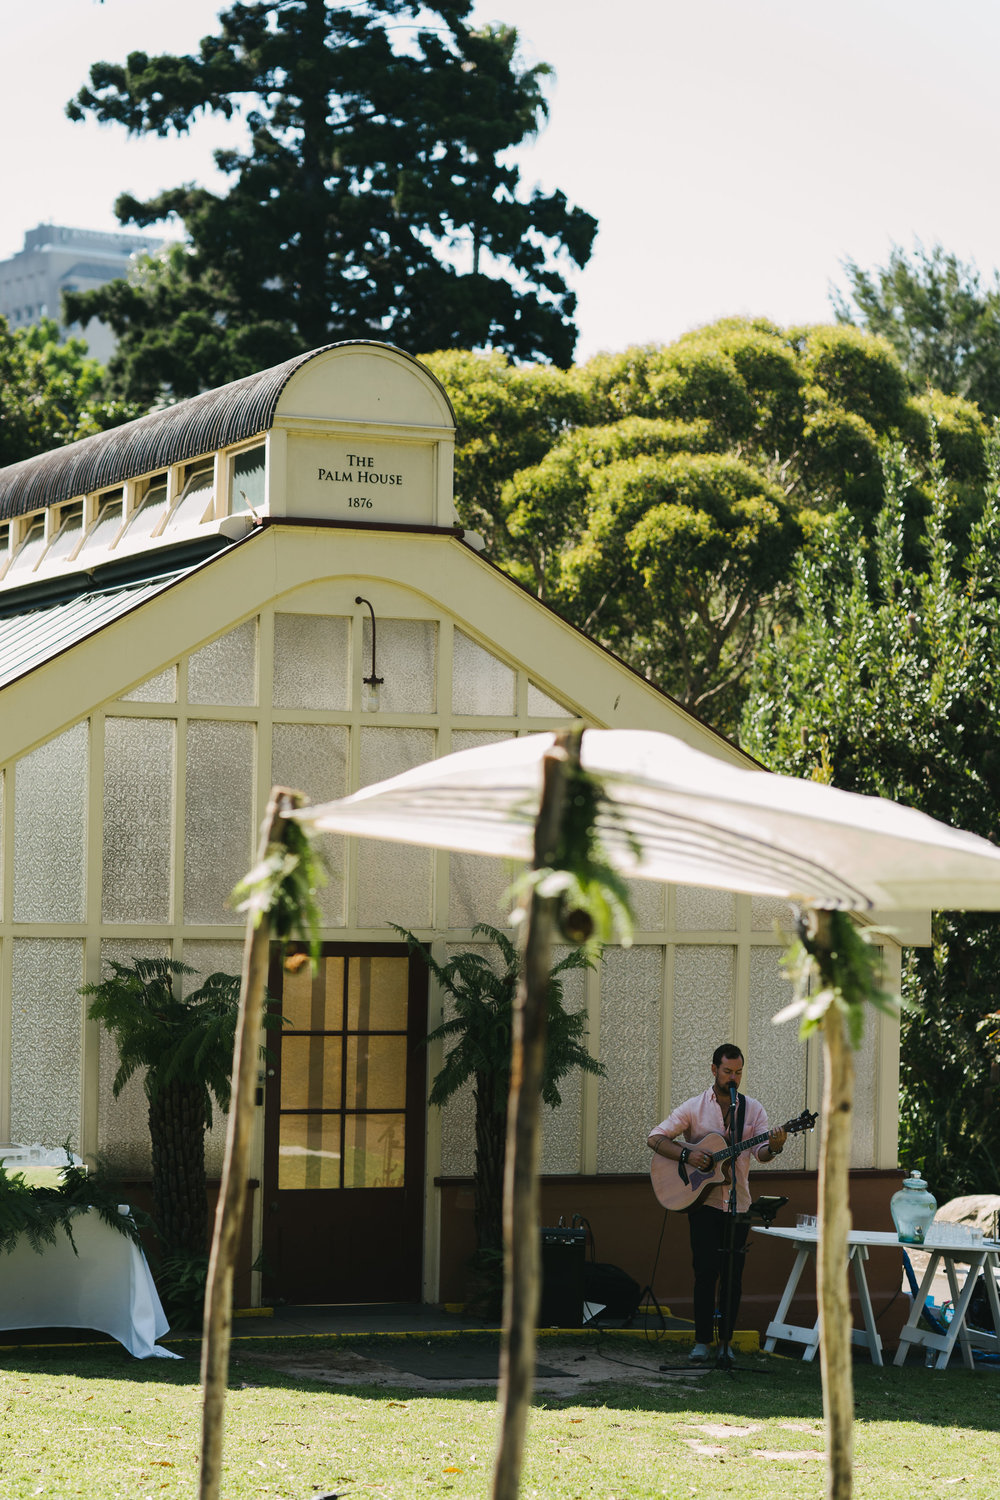 Wedding ceremony set up at The Palm House Lawn, Wedding Chuppah and music playing